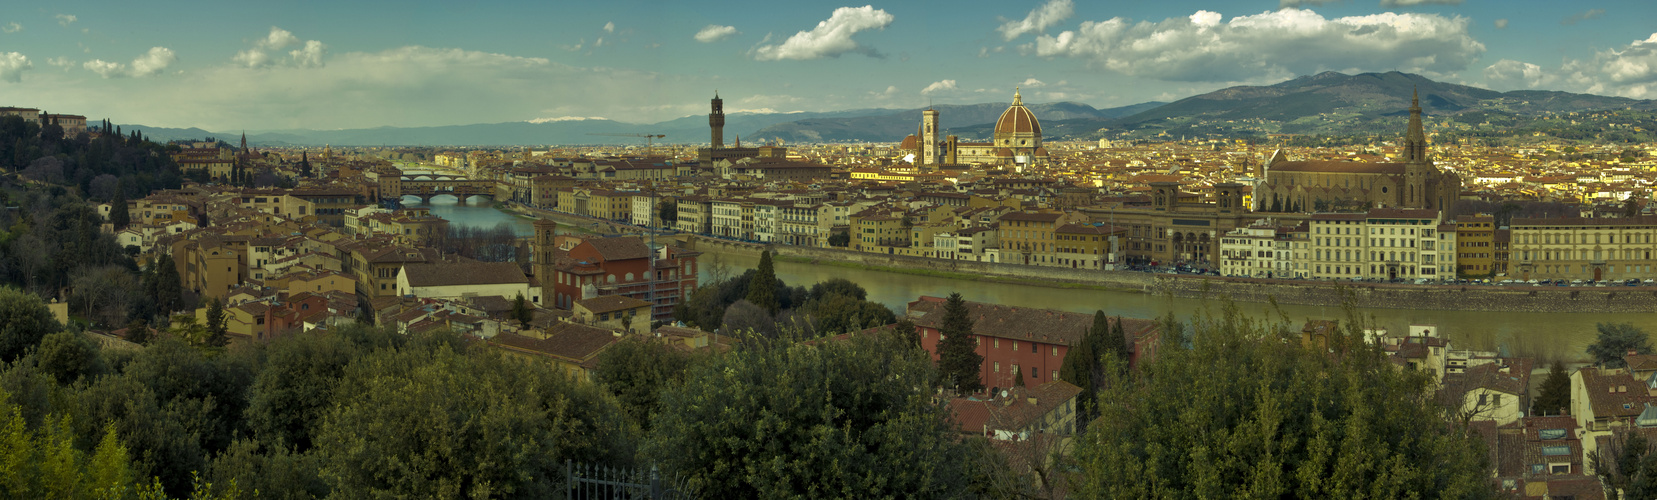 Panorama View Over Florence With The River Arno